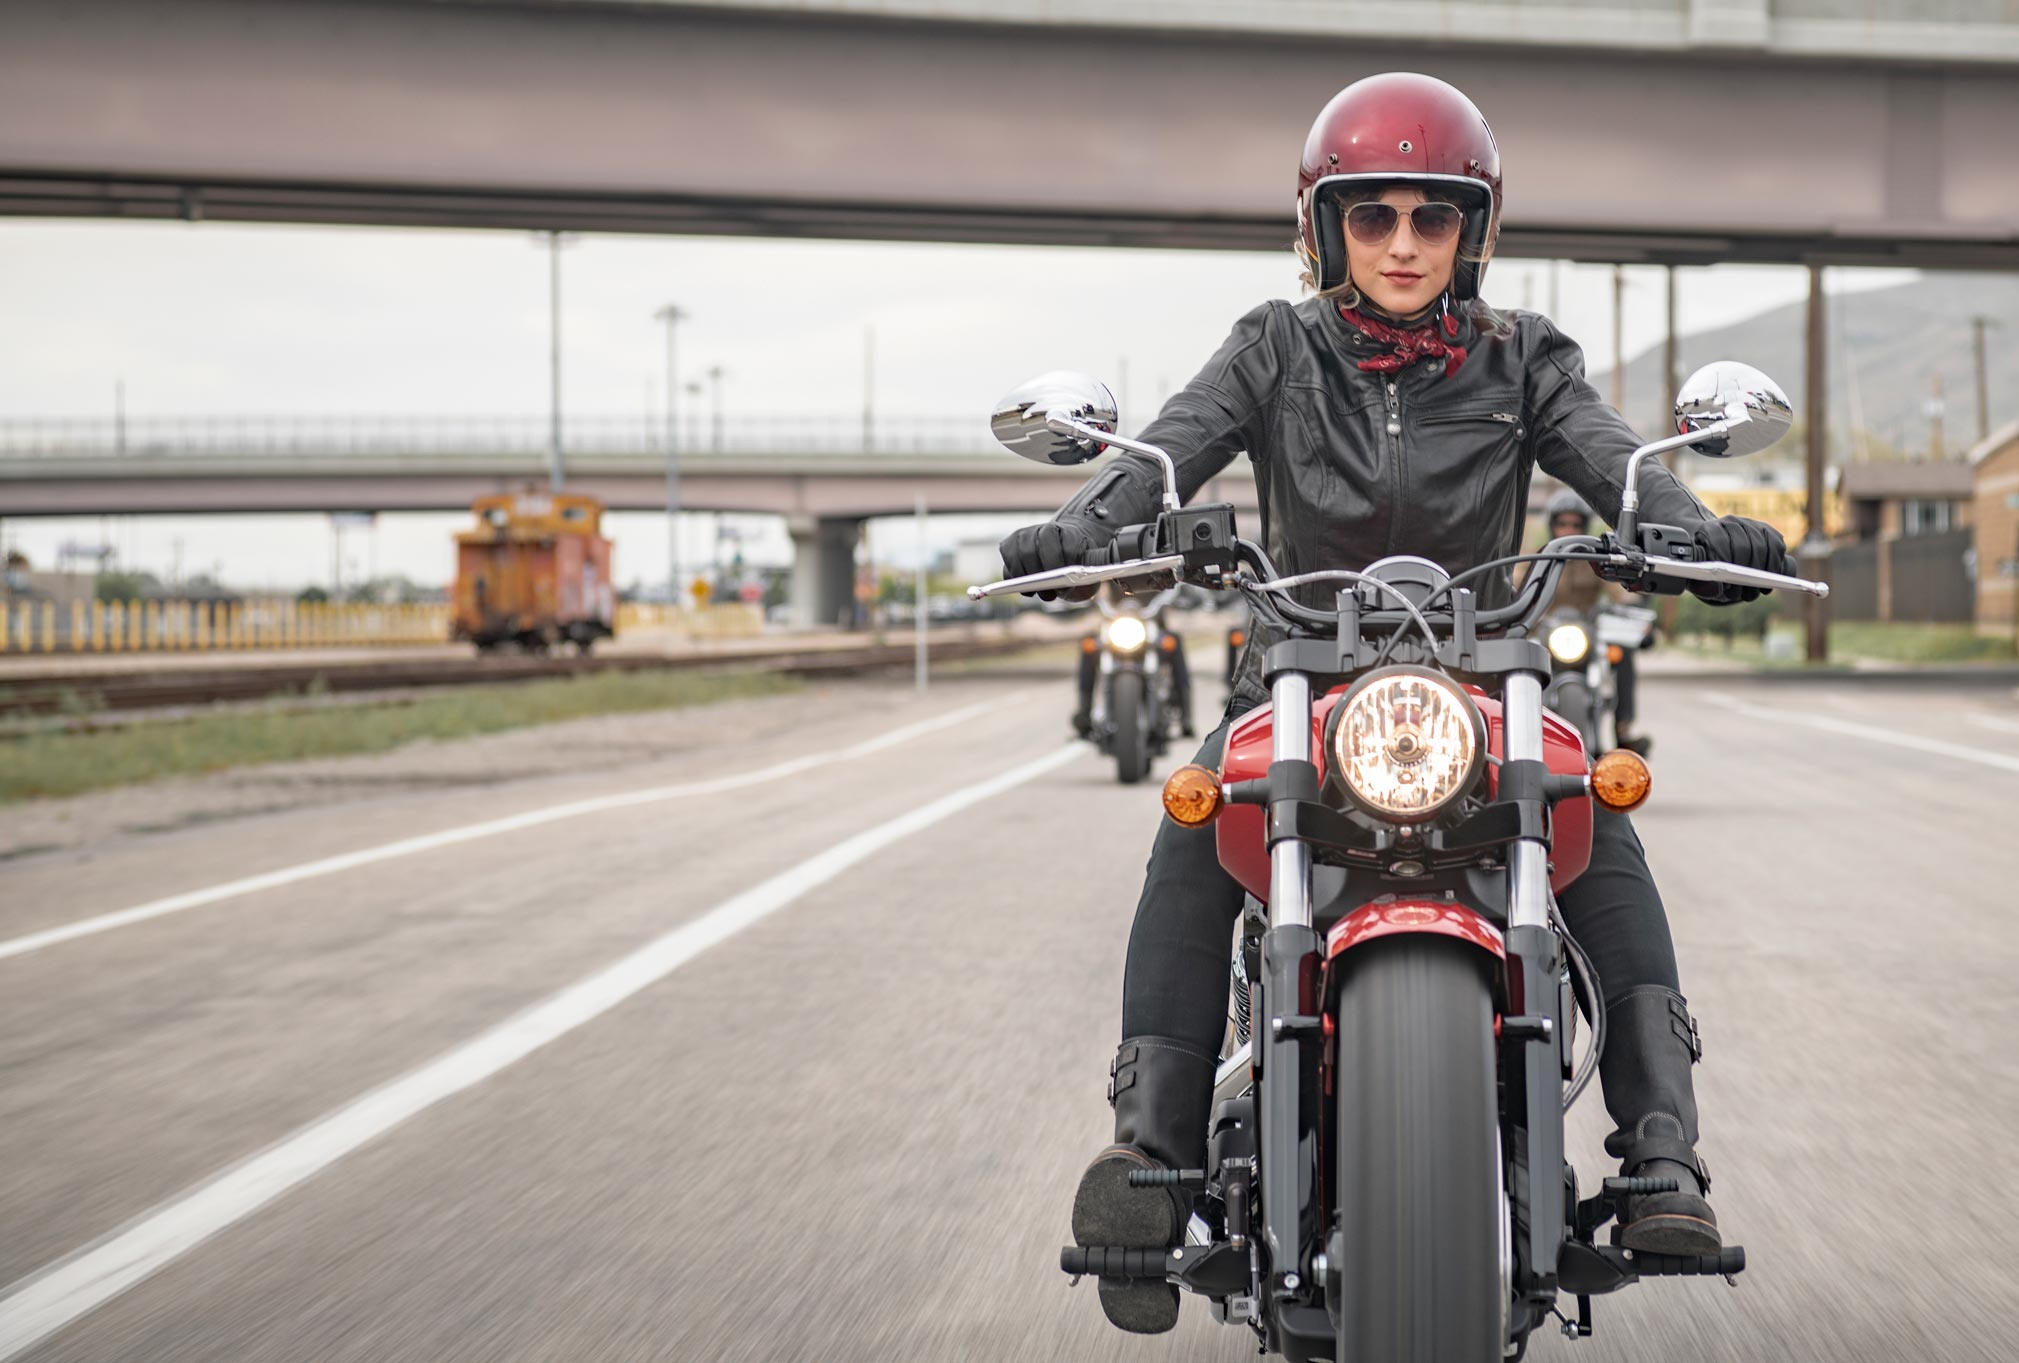 2019 Indian Scout Sixty Guide Total Motorcycle [ 1363 x 2019 Pixel ]